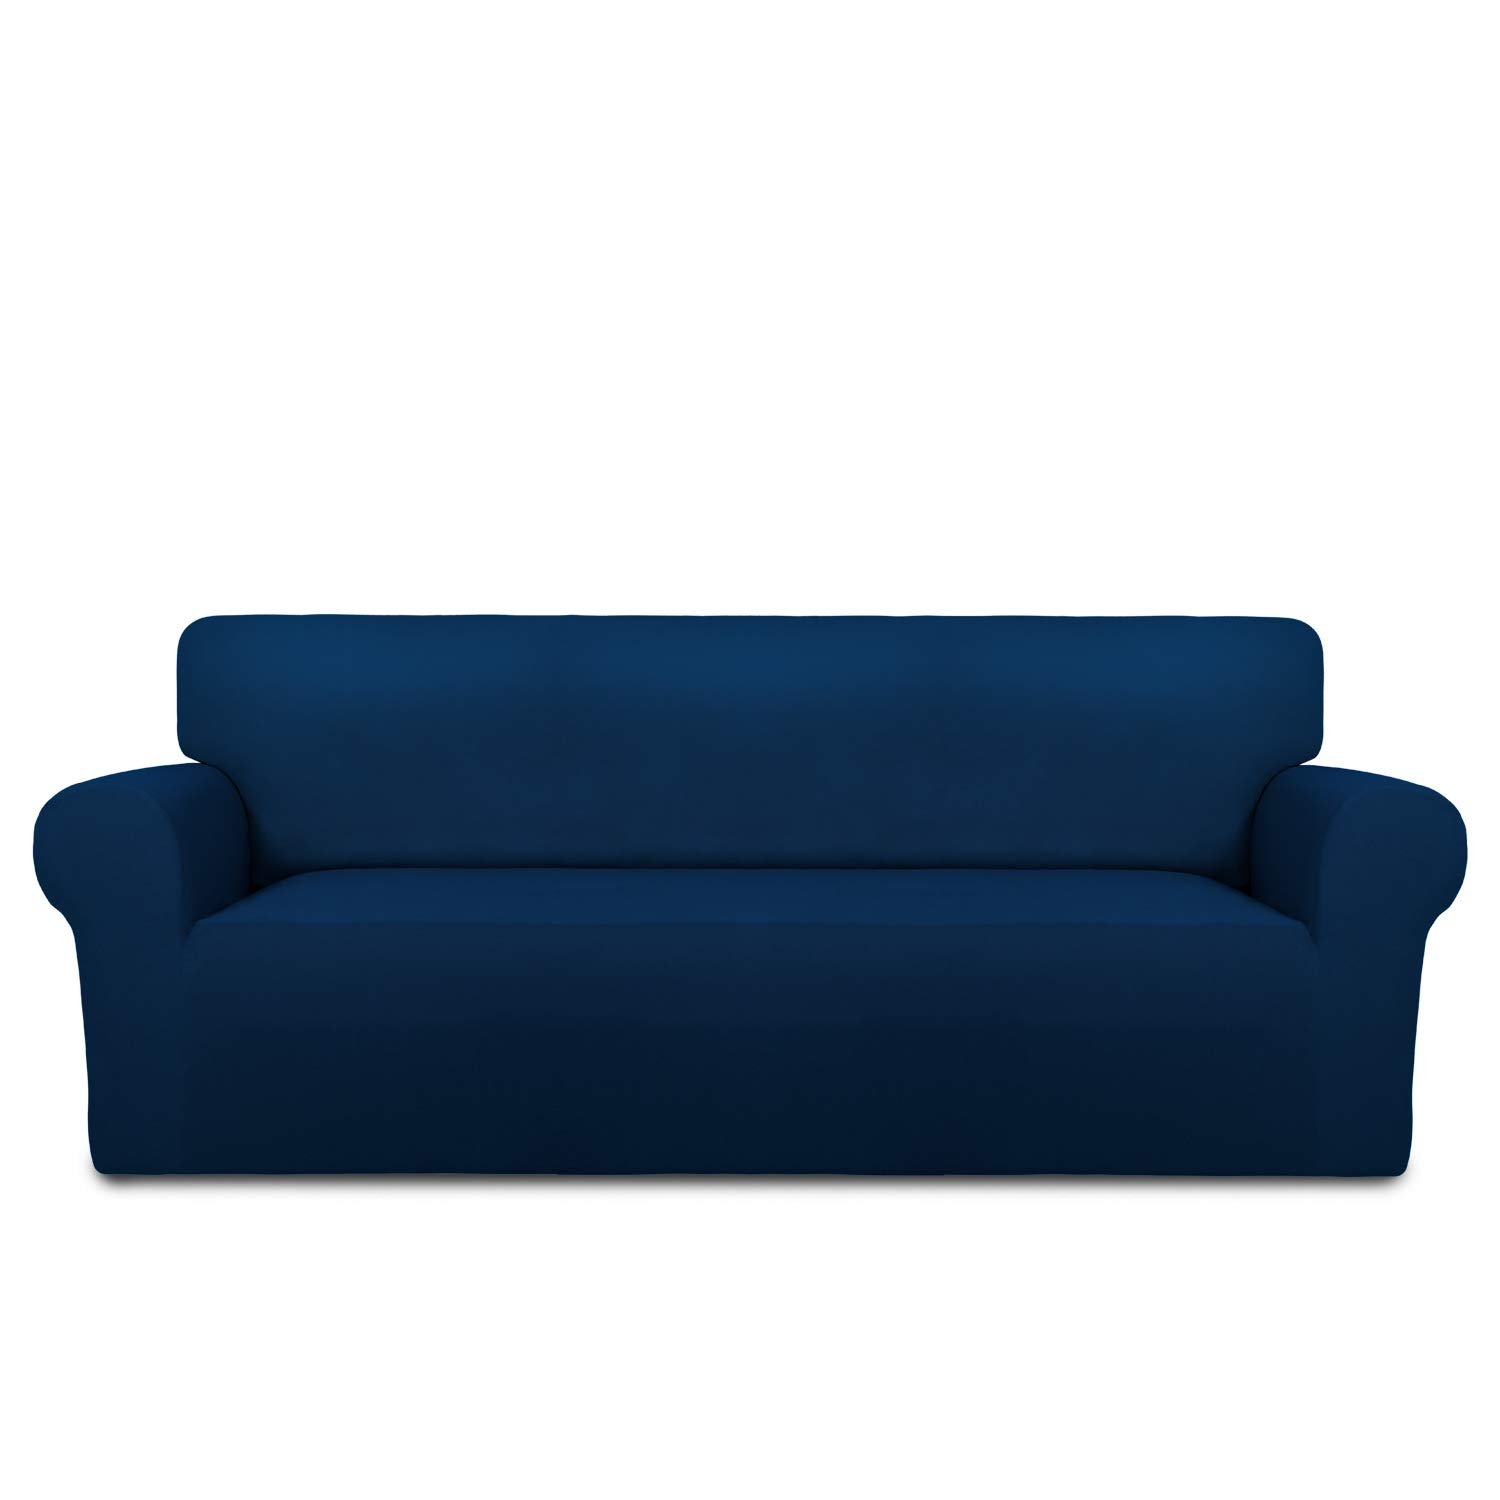 Easy-Going Fleece Stretch Sofa Slipcover Soft Couch Sofa Cover, Washable Micro Fiber Non-Slip Furniture Protector with Anti-Skid Foam and Elastic Bottom for Kids, Pets(Sofa,Navy)